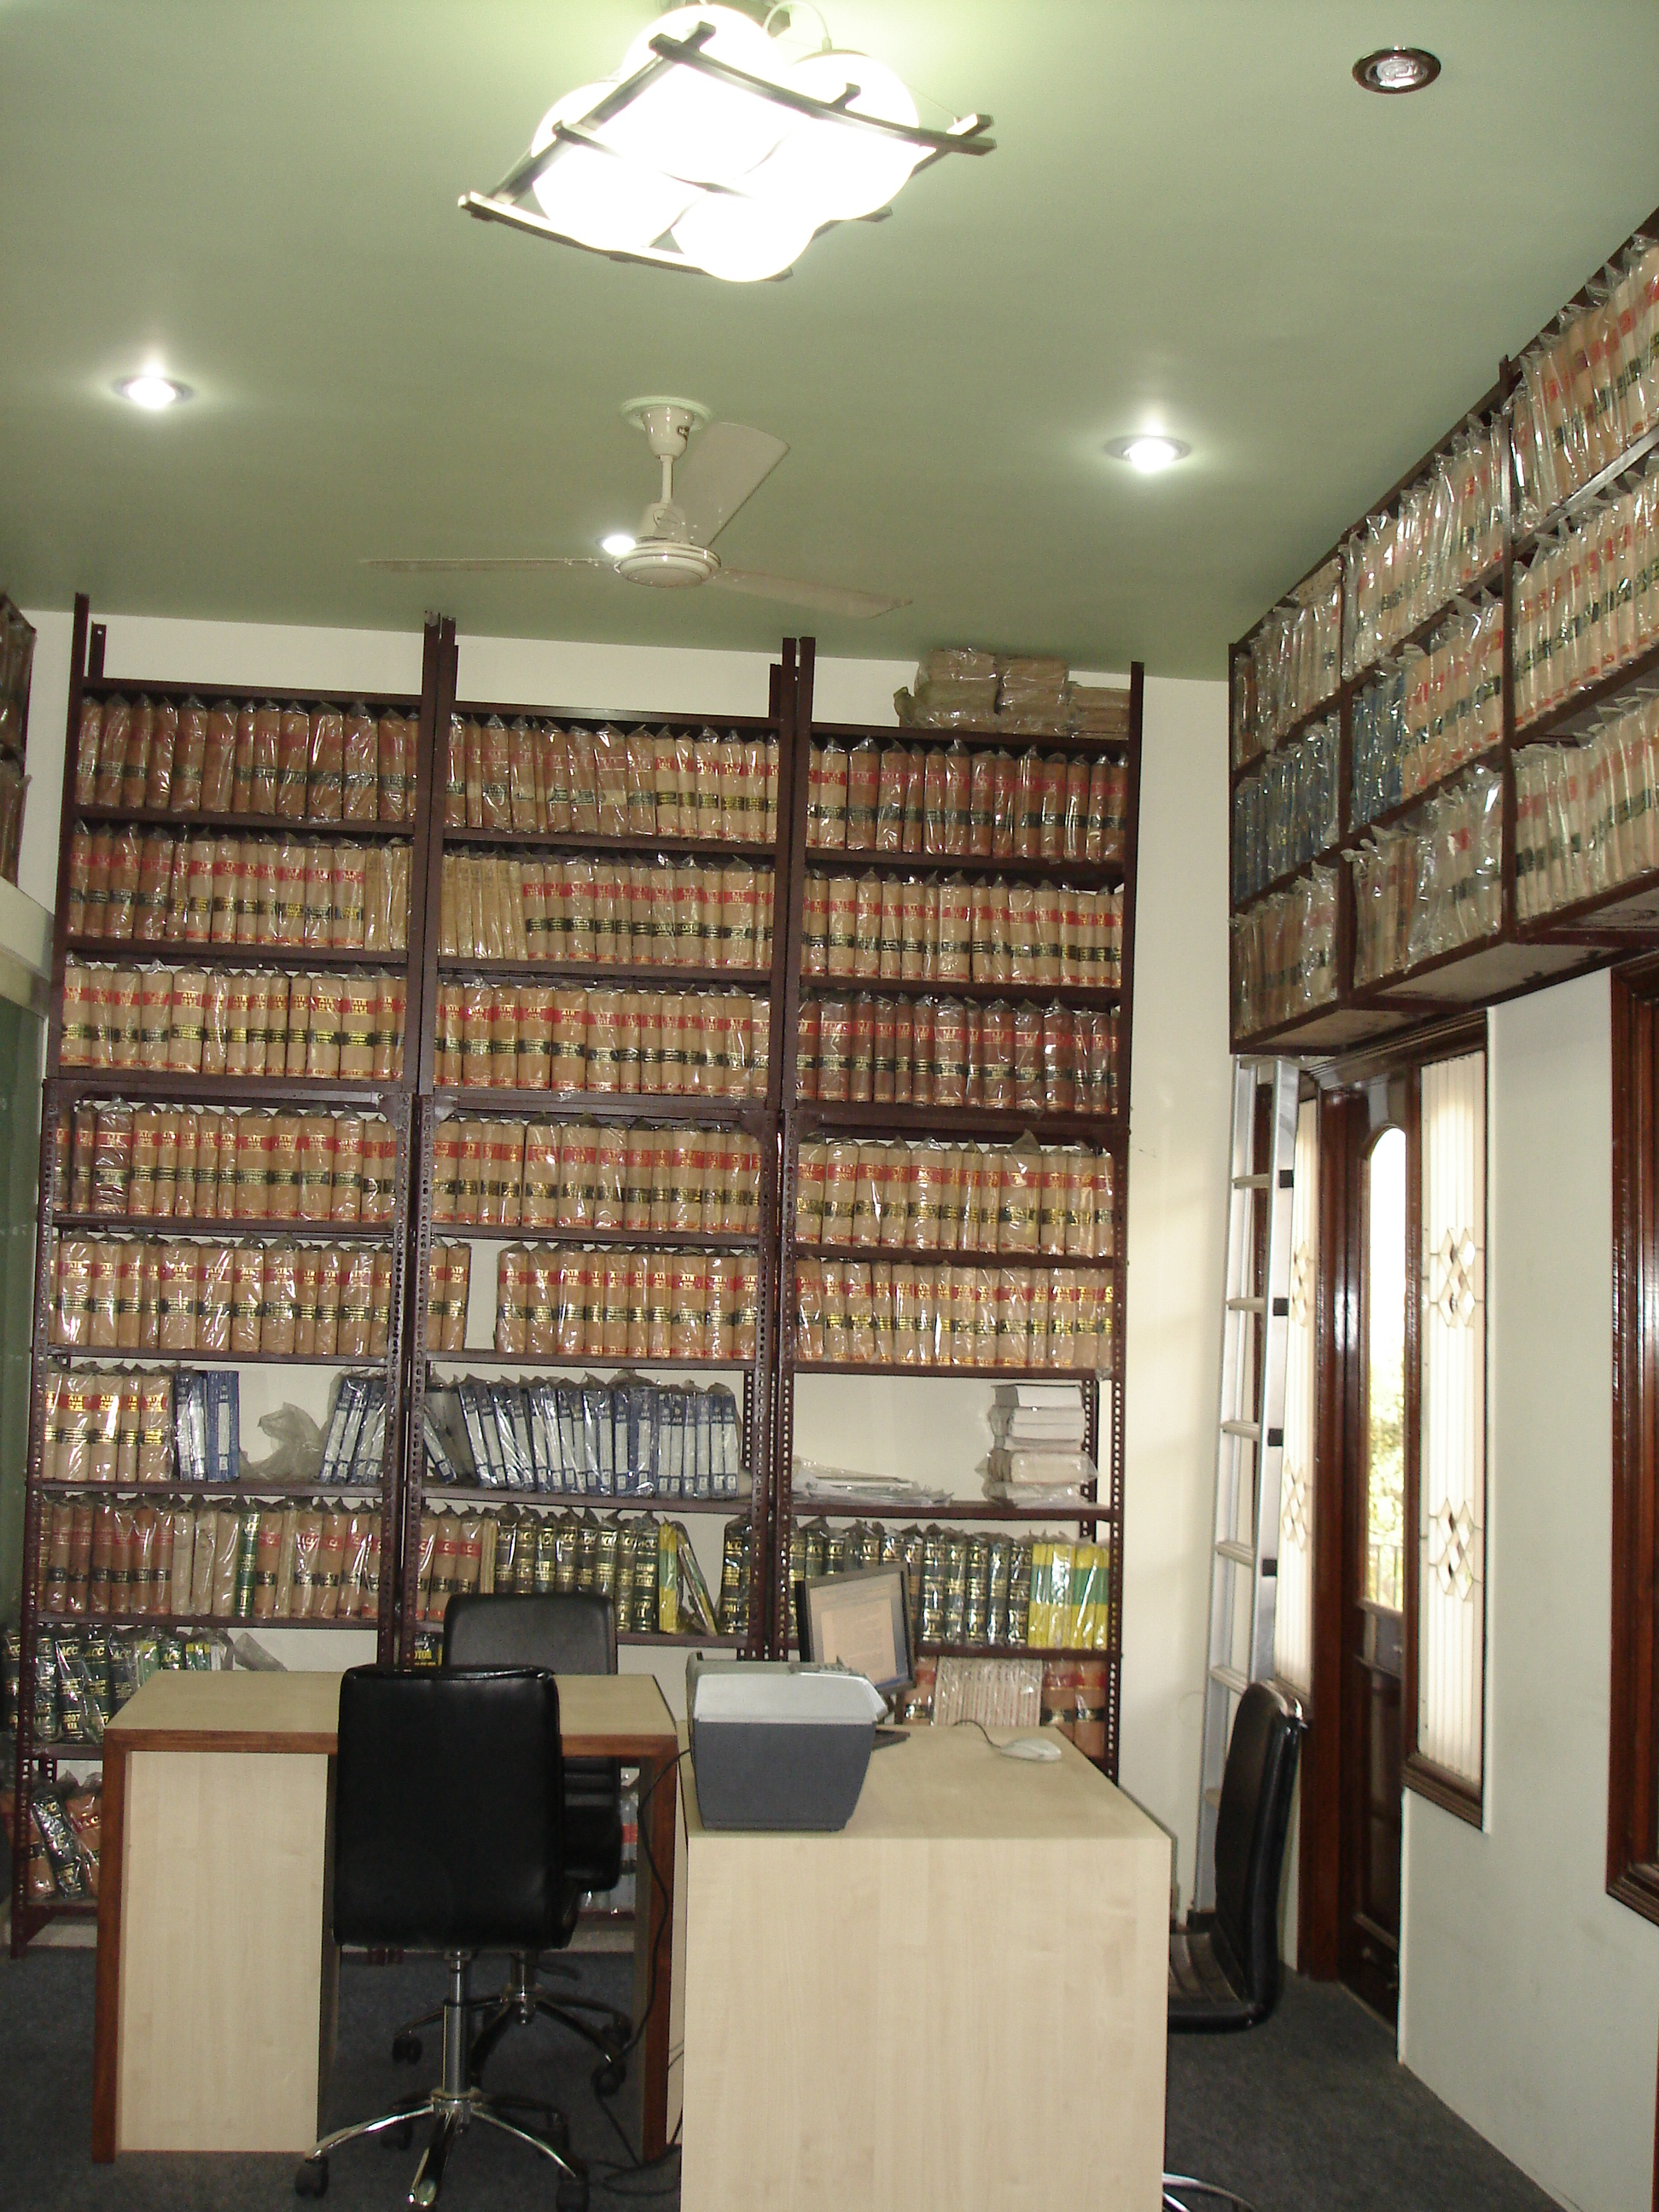 ADVOCATE OFFICE by Udita Bansal Agrawal at Coroflot.com